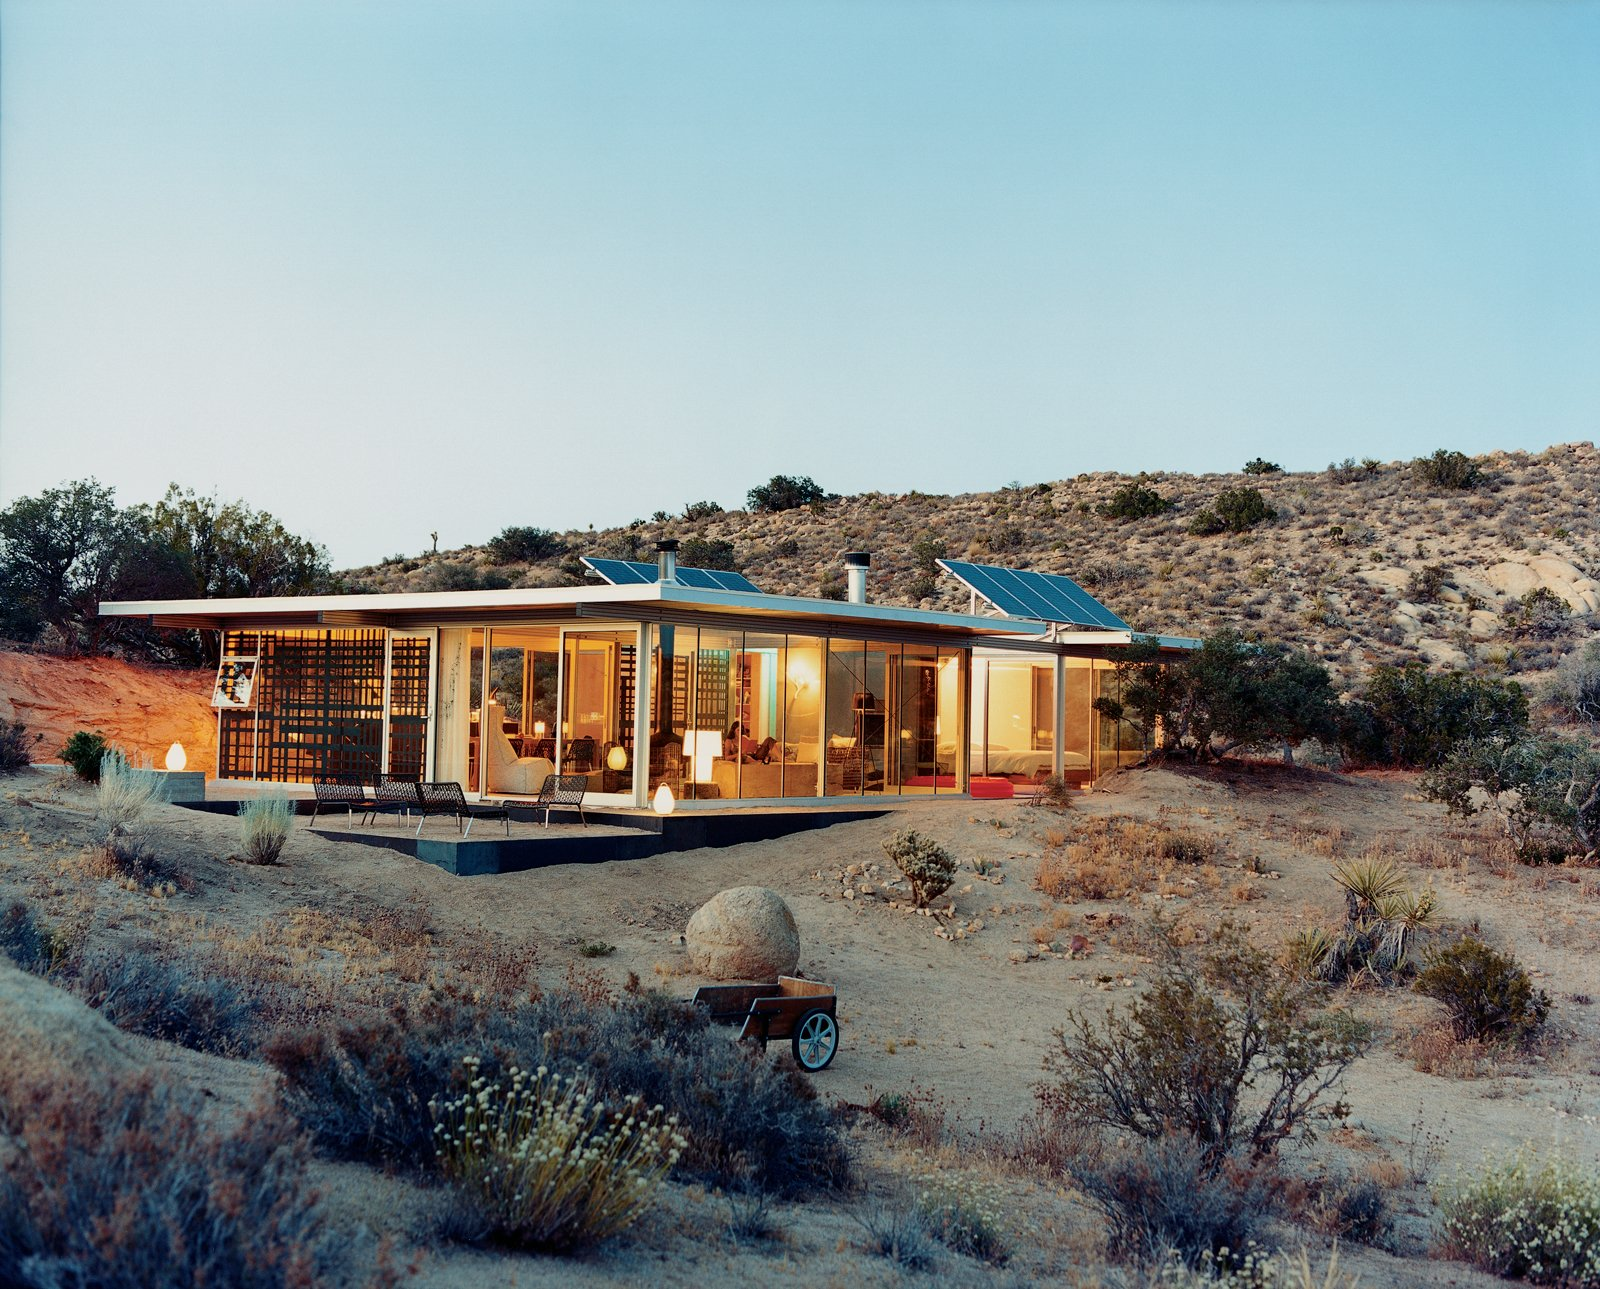 Exterior, House Building Type, Flat RoofLine, Metal Siding Material, and Glass Siding Material The iT House is an exploration of the couple's architectural ideas, built with the help of friends over many weekends away from Los Angeles. It brings the precise and the cool together with the wild and untamed.  Best Photos from iT House, Joshua Tree